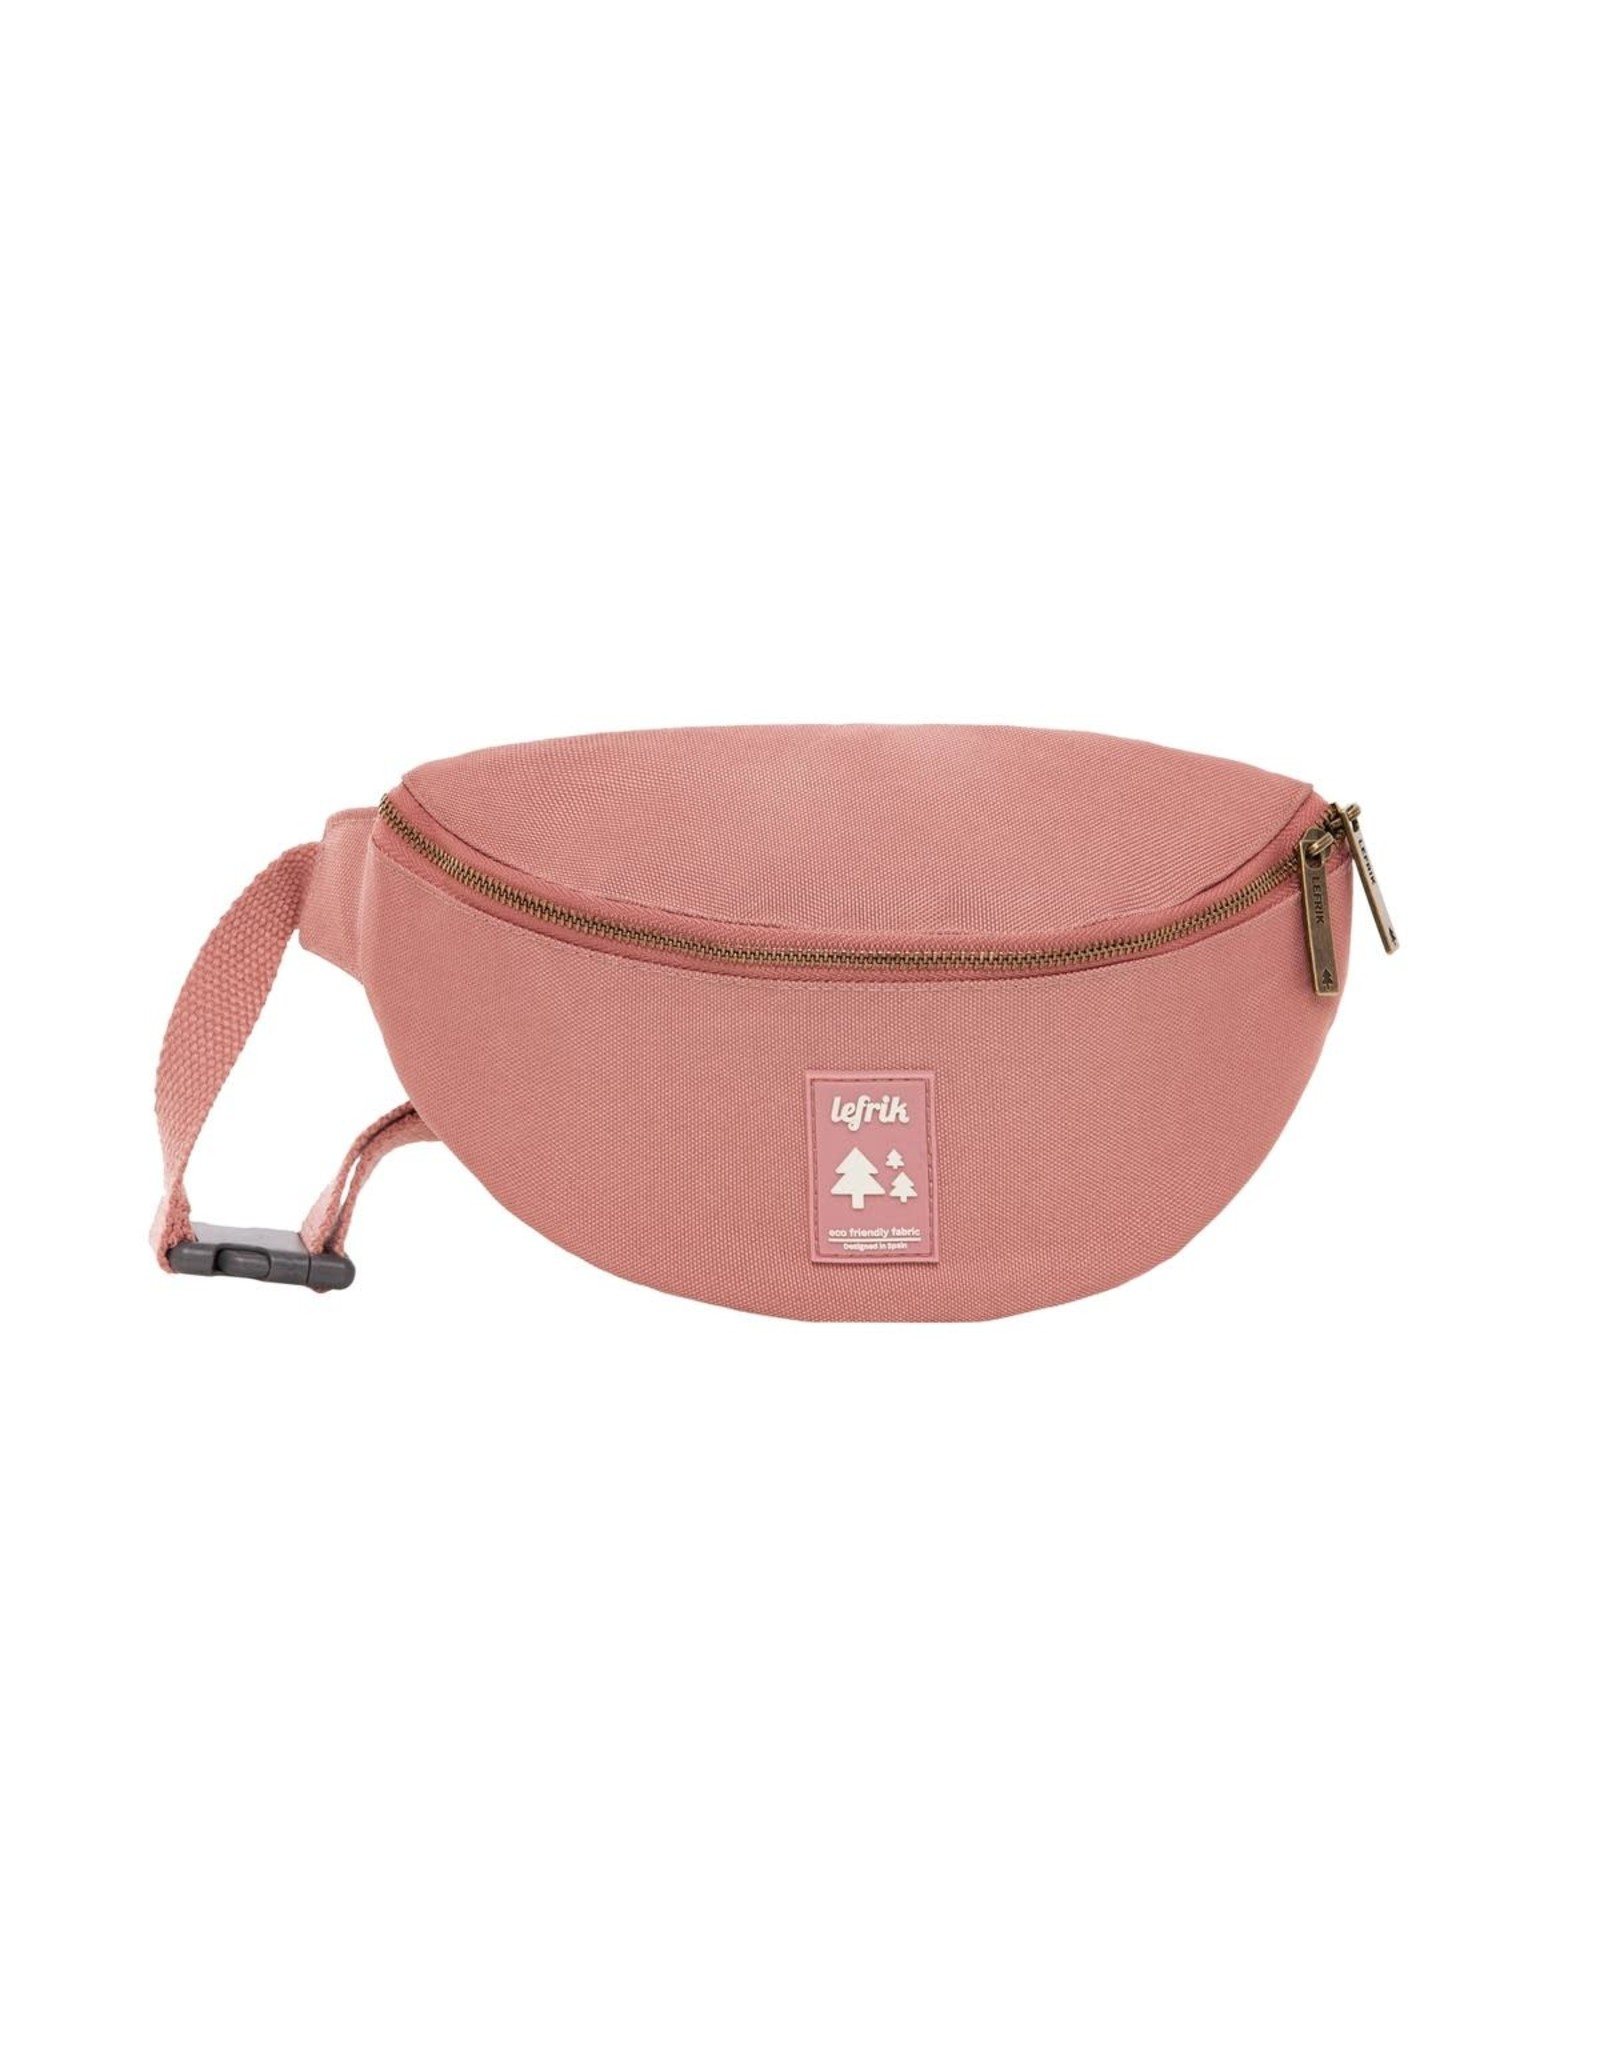 LEFRIK GOLD BEAT BUM BAG - Dust Pink